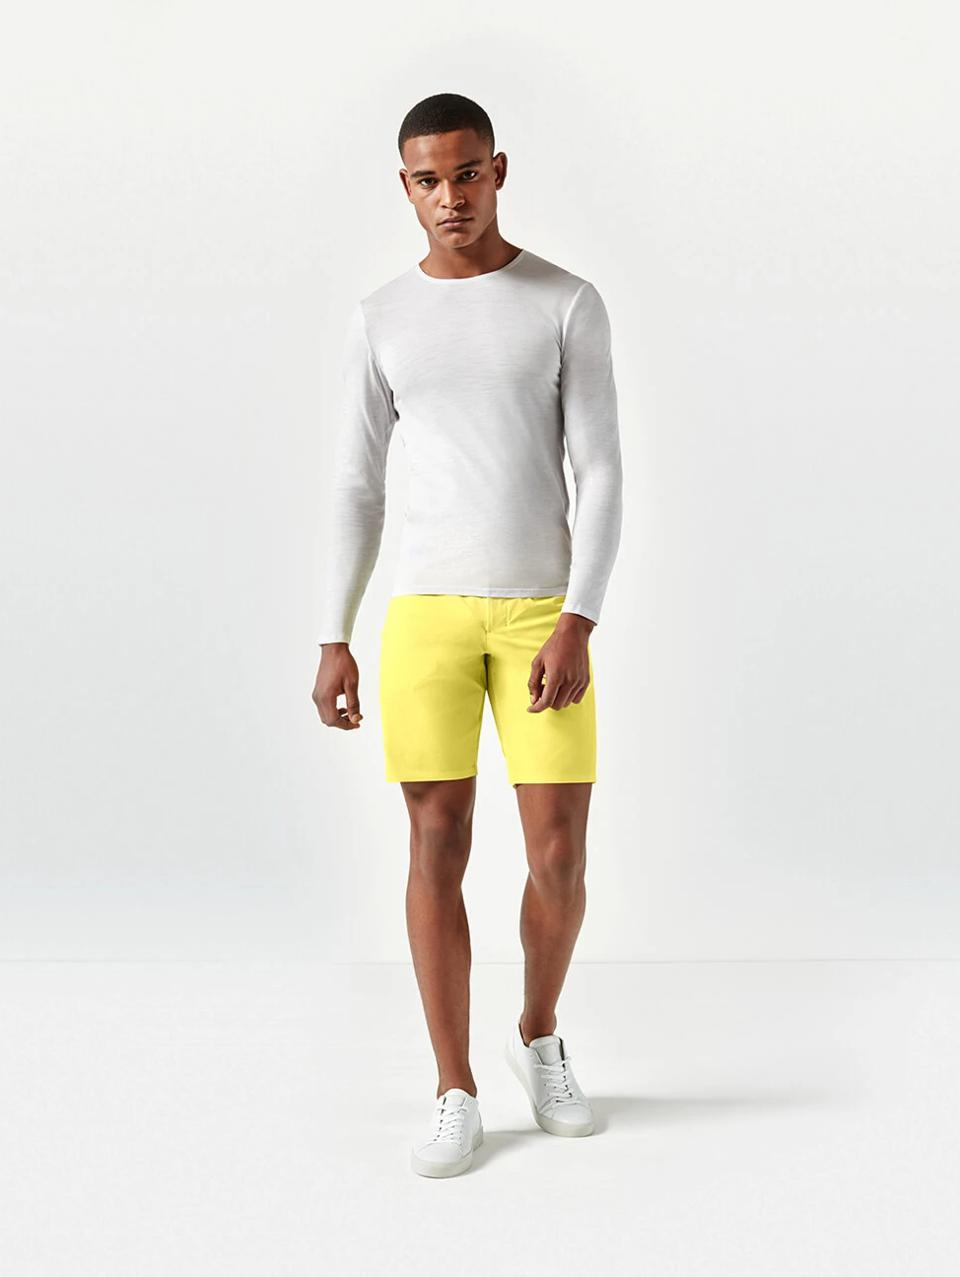 Find Aeance's Merino Jersey LS Tee and other high-end, sustainable pieces at Future Proper, the first online boutique for premium men's activewear brands.